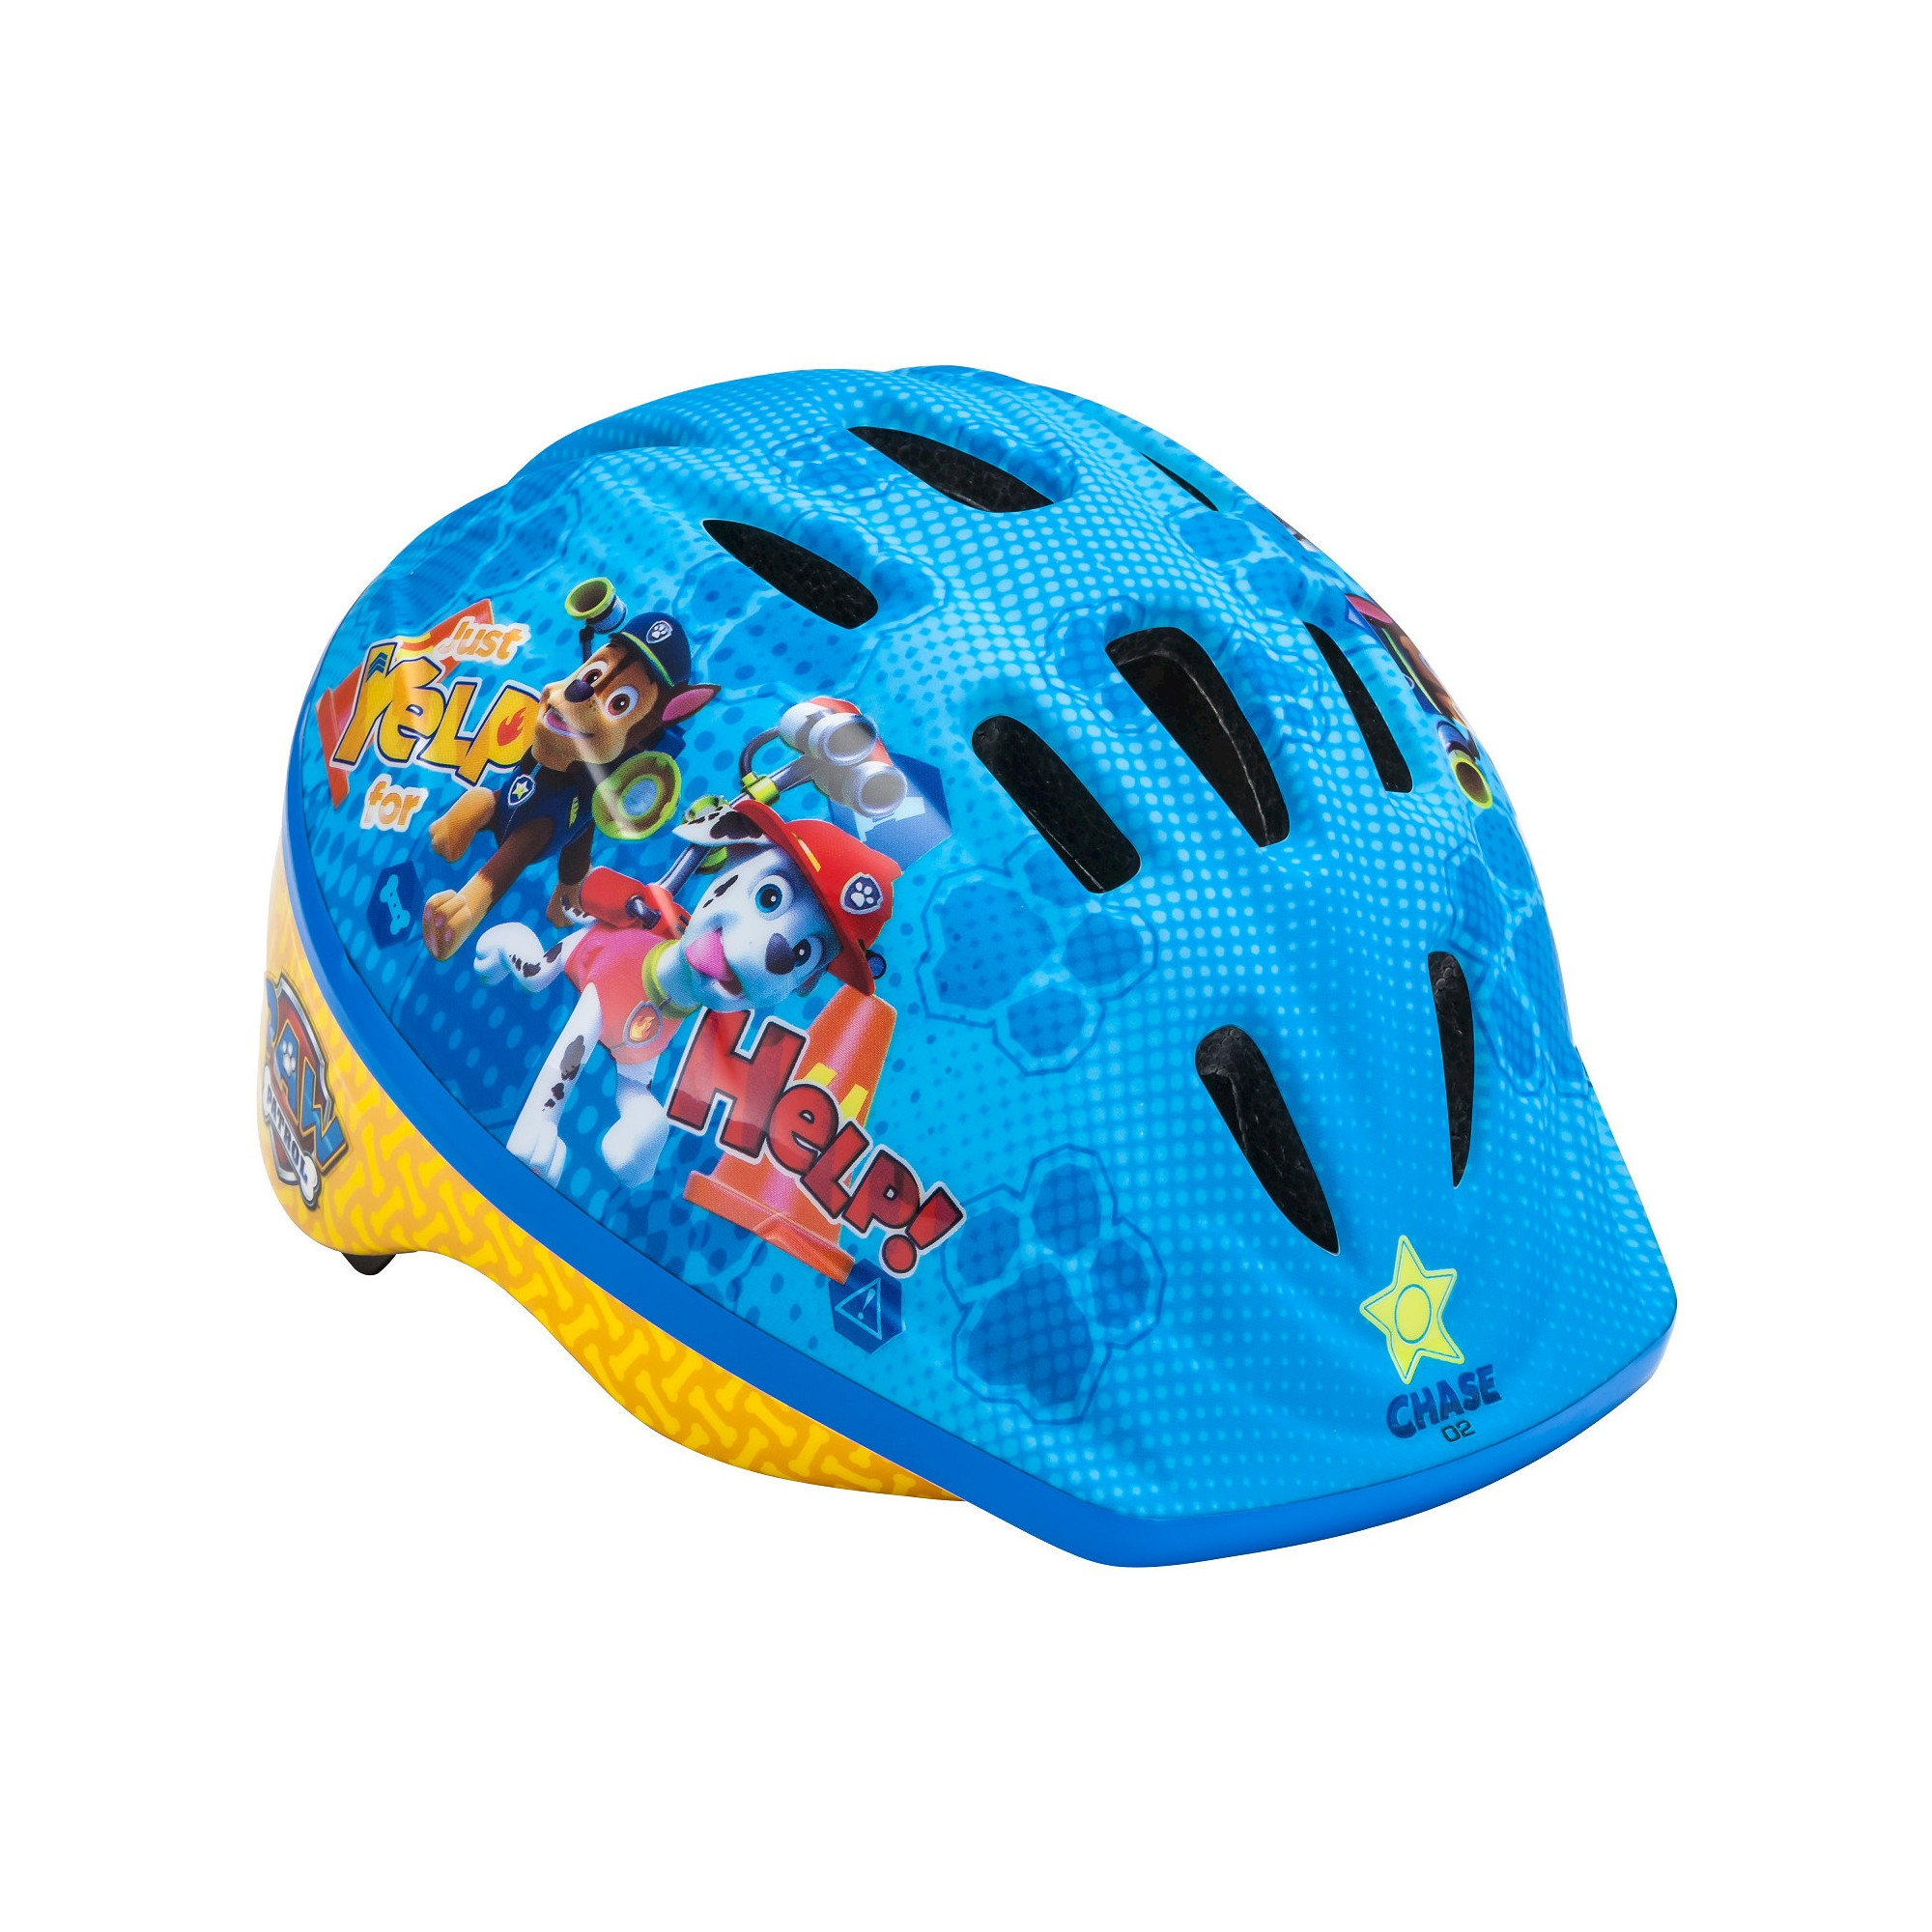 Paw Patrol Toddler Helmet - Age 3+, Blue | Products